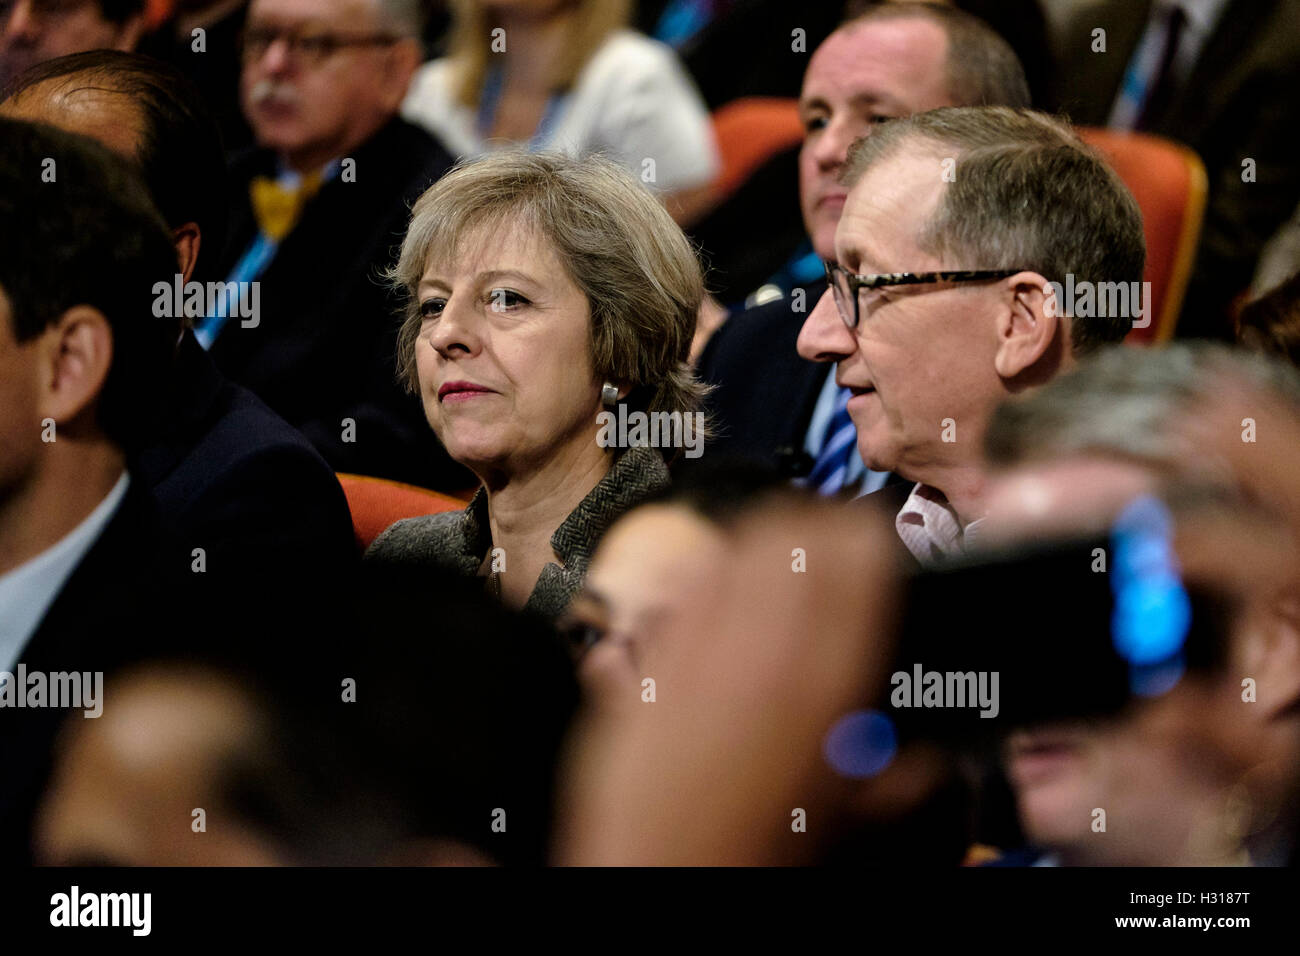 Conservative Party Conference day 2 on 03/10/2016 at Birmingham ICC, Birmingham. Persons pictured: Theresa May, - Stock Image